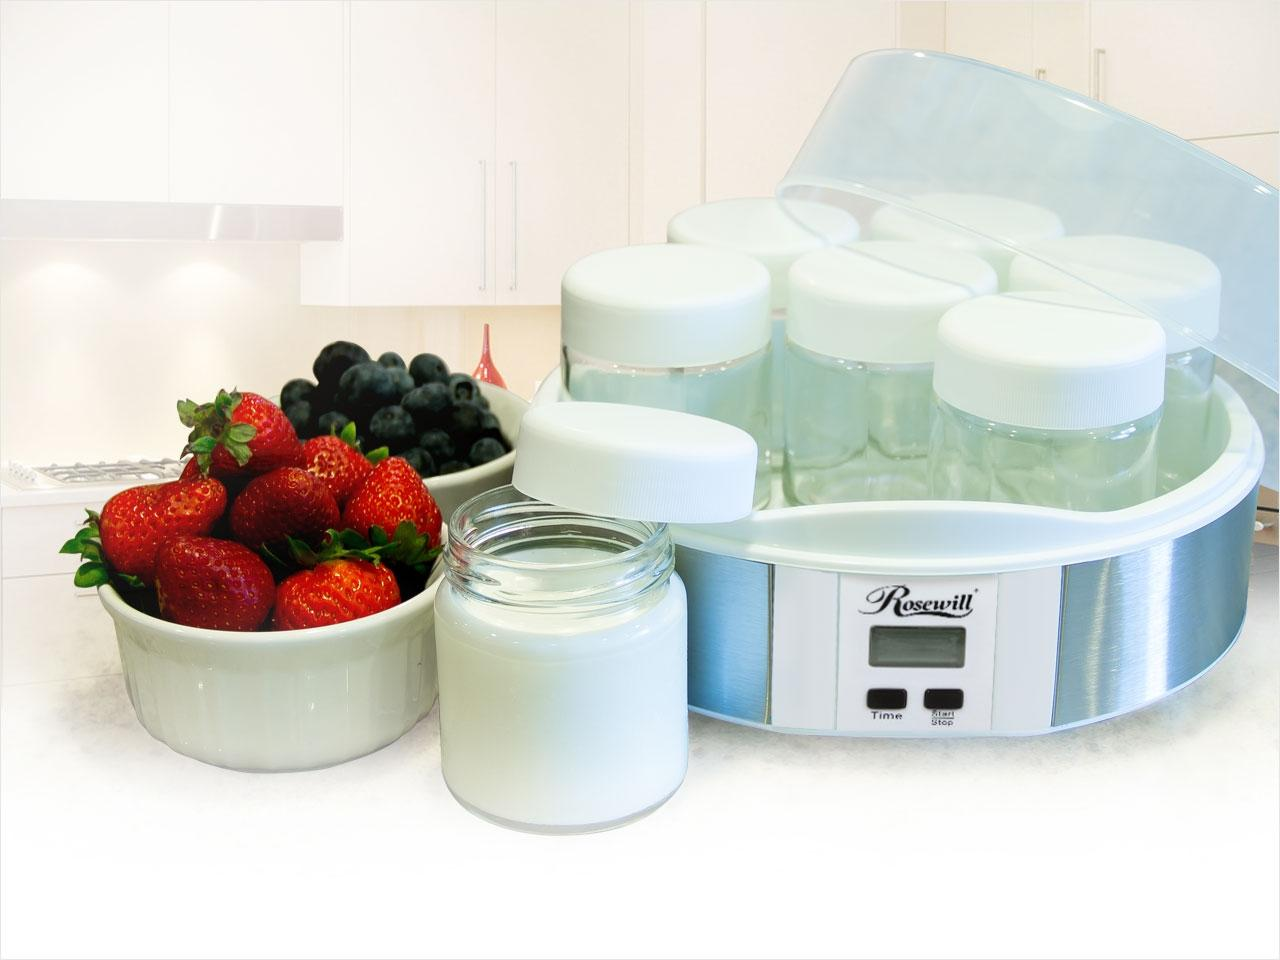 Rosewill RHYM-13001 7 Glass Cups Digital Yogurt Maker